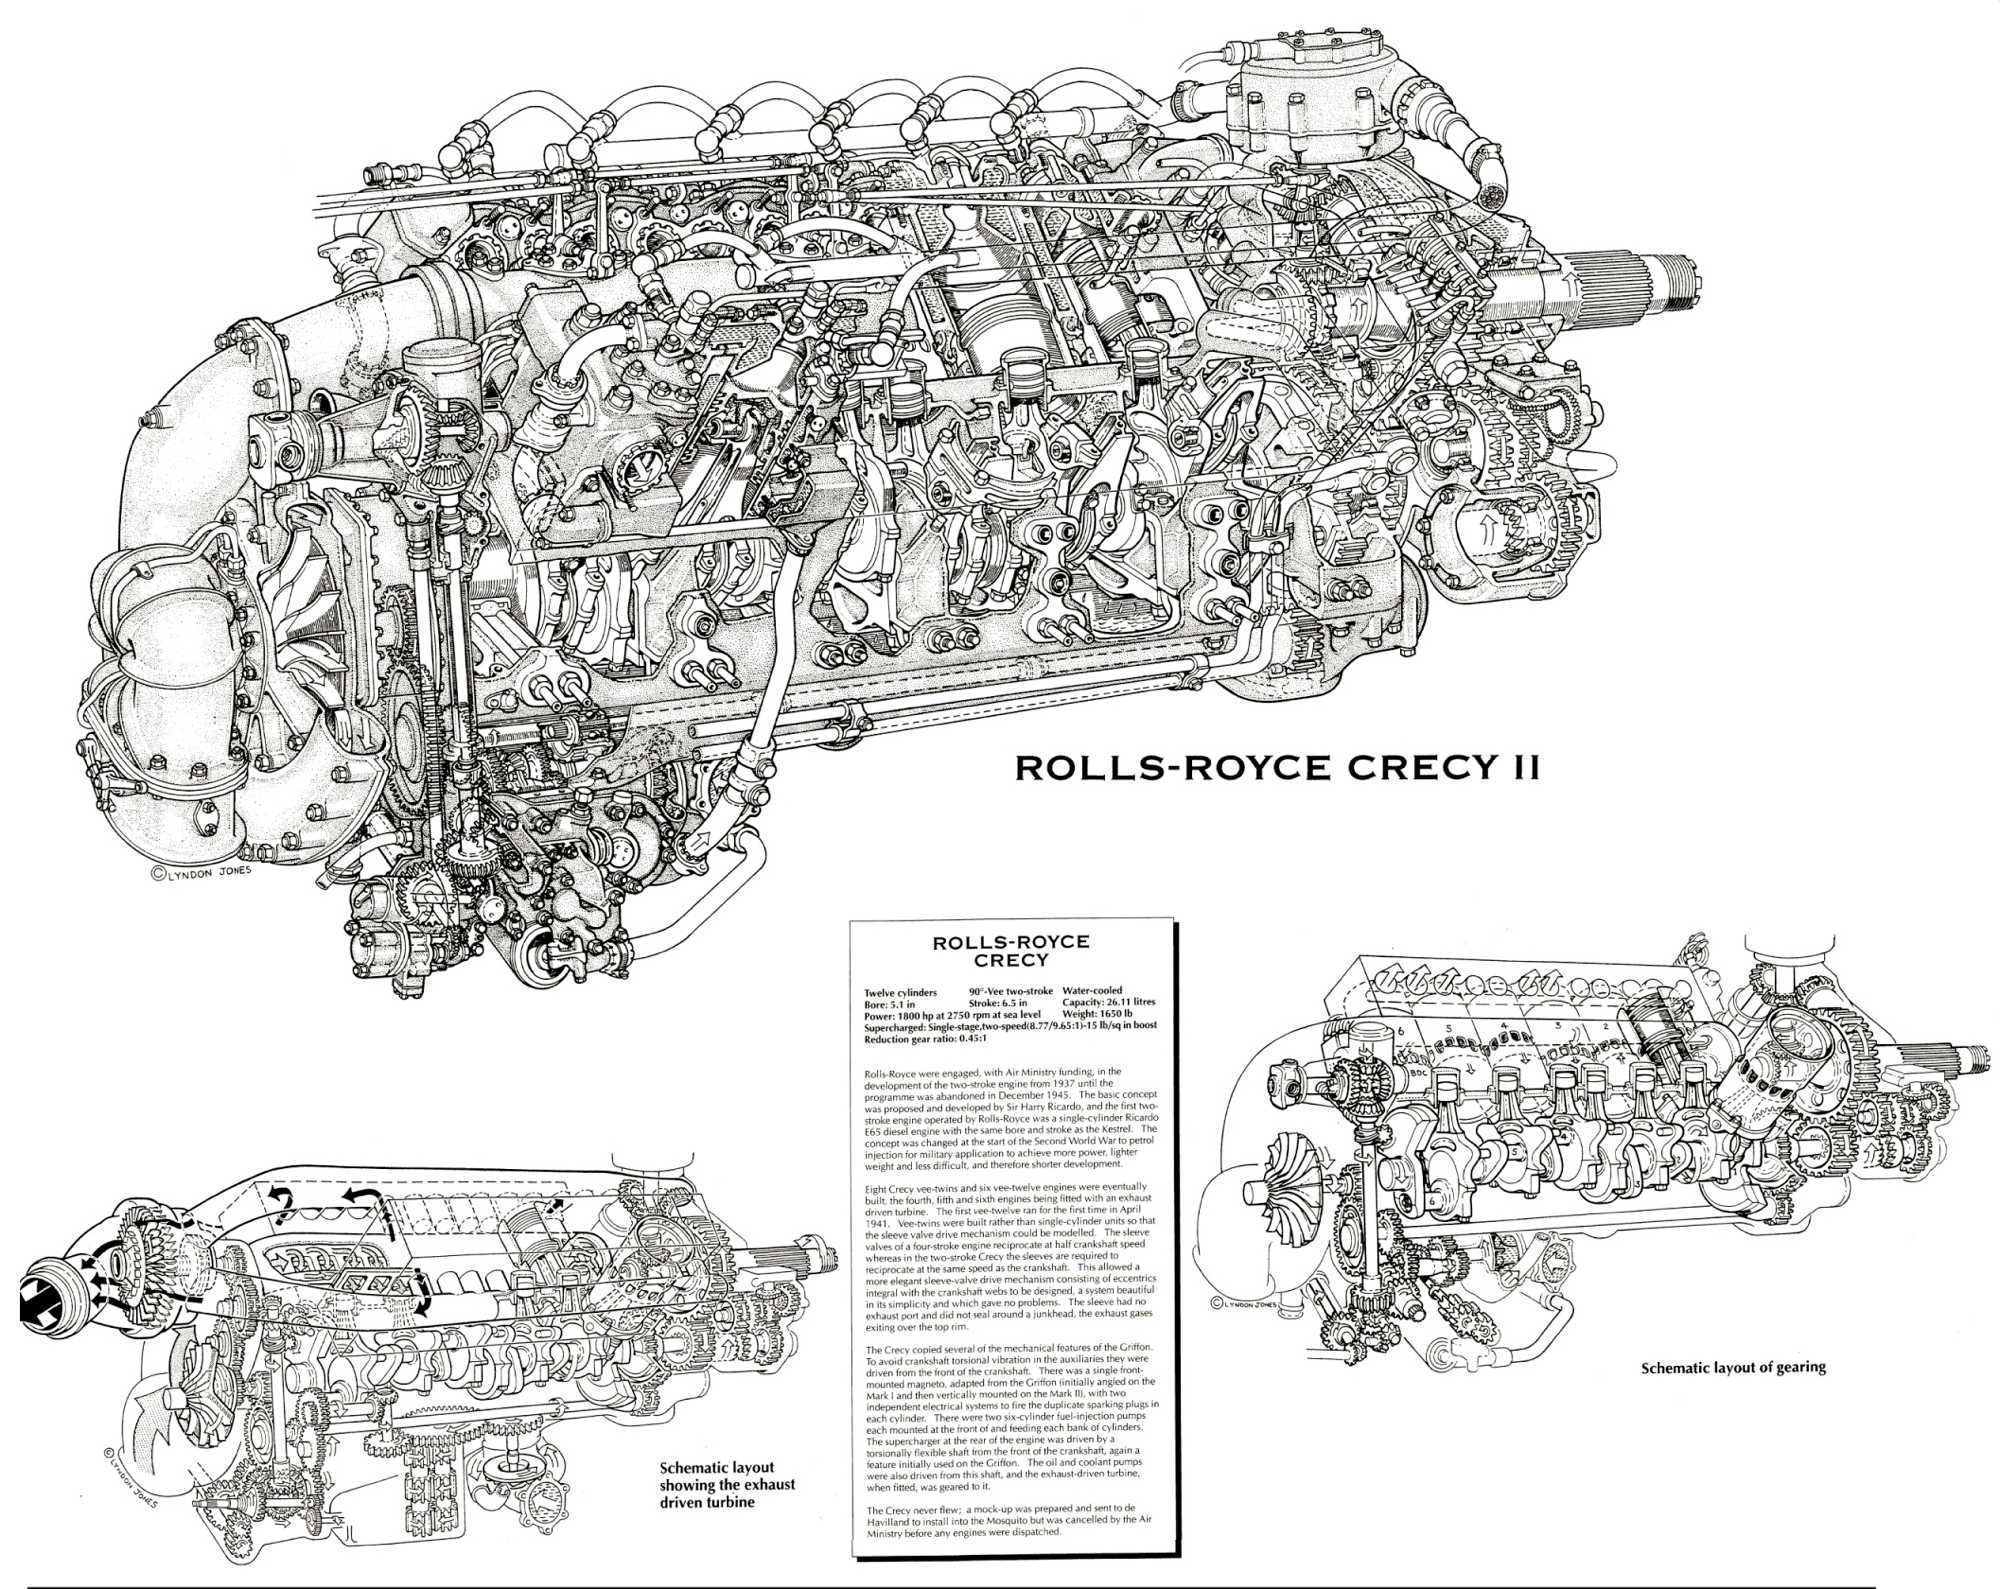 Rolls Royce Crecy Ii Engine Cutaway